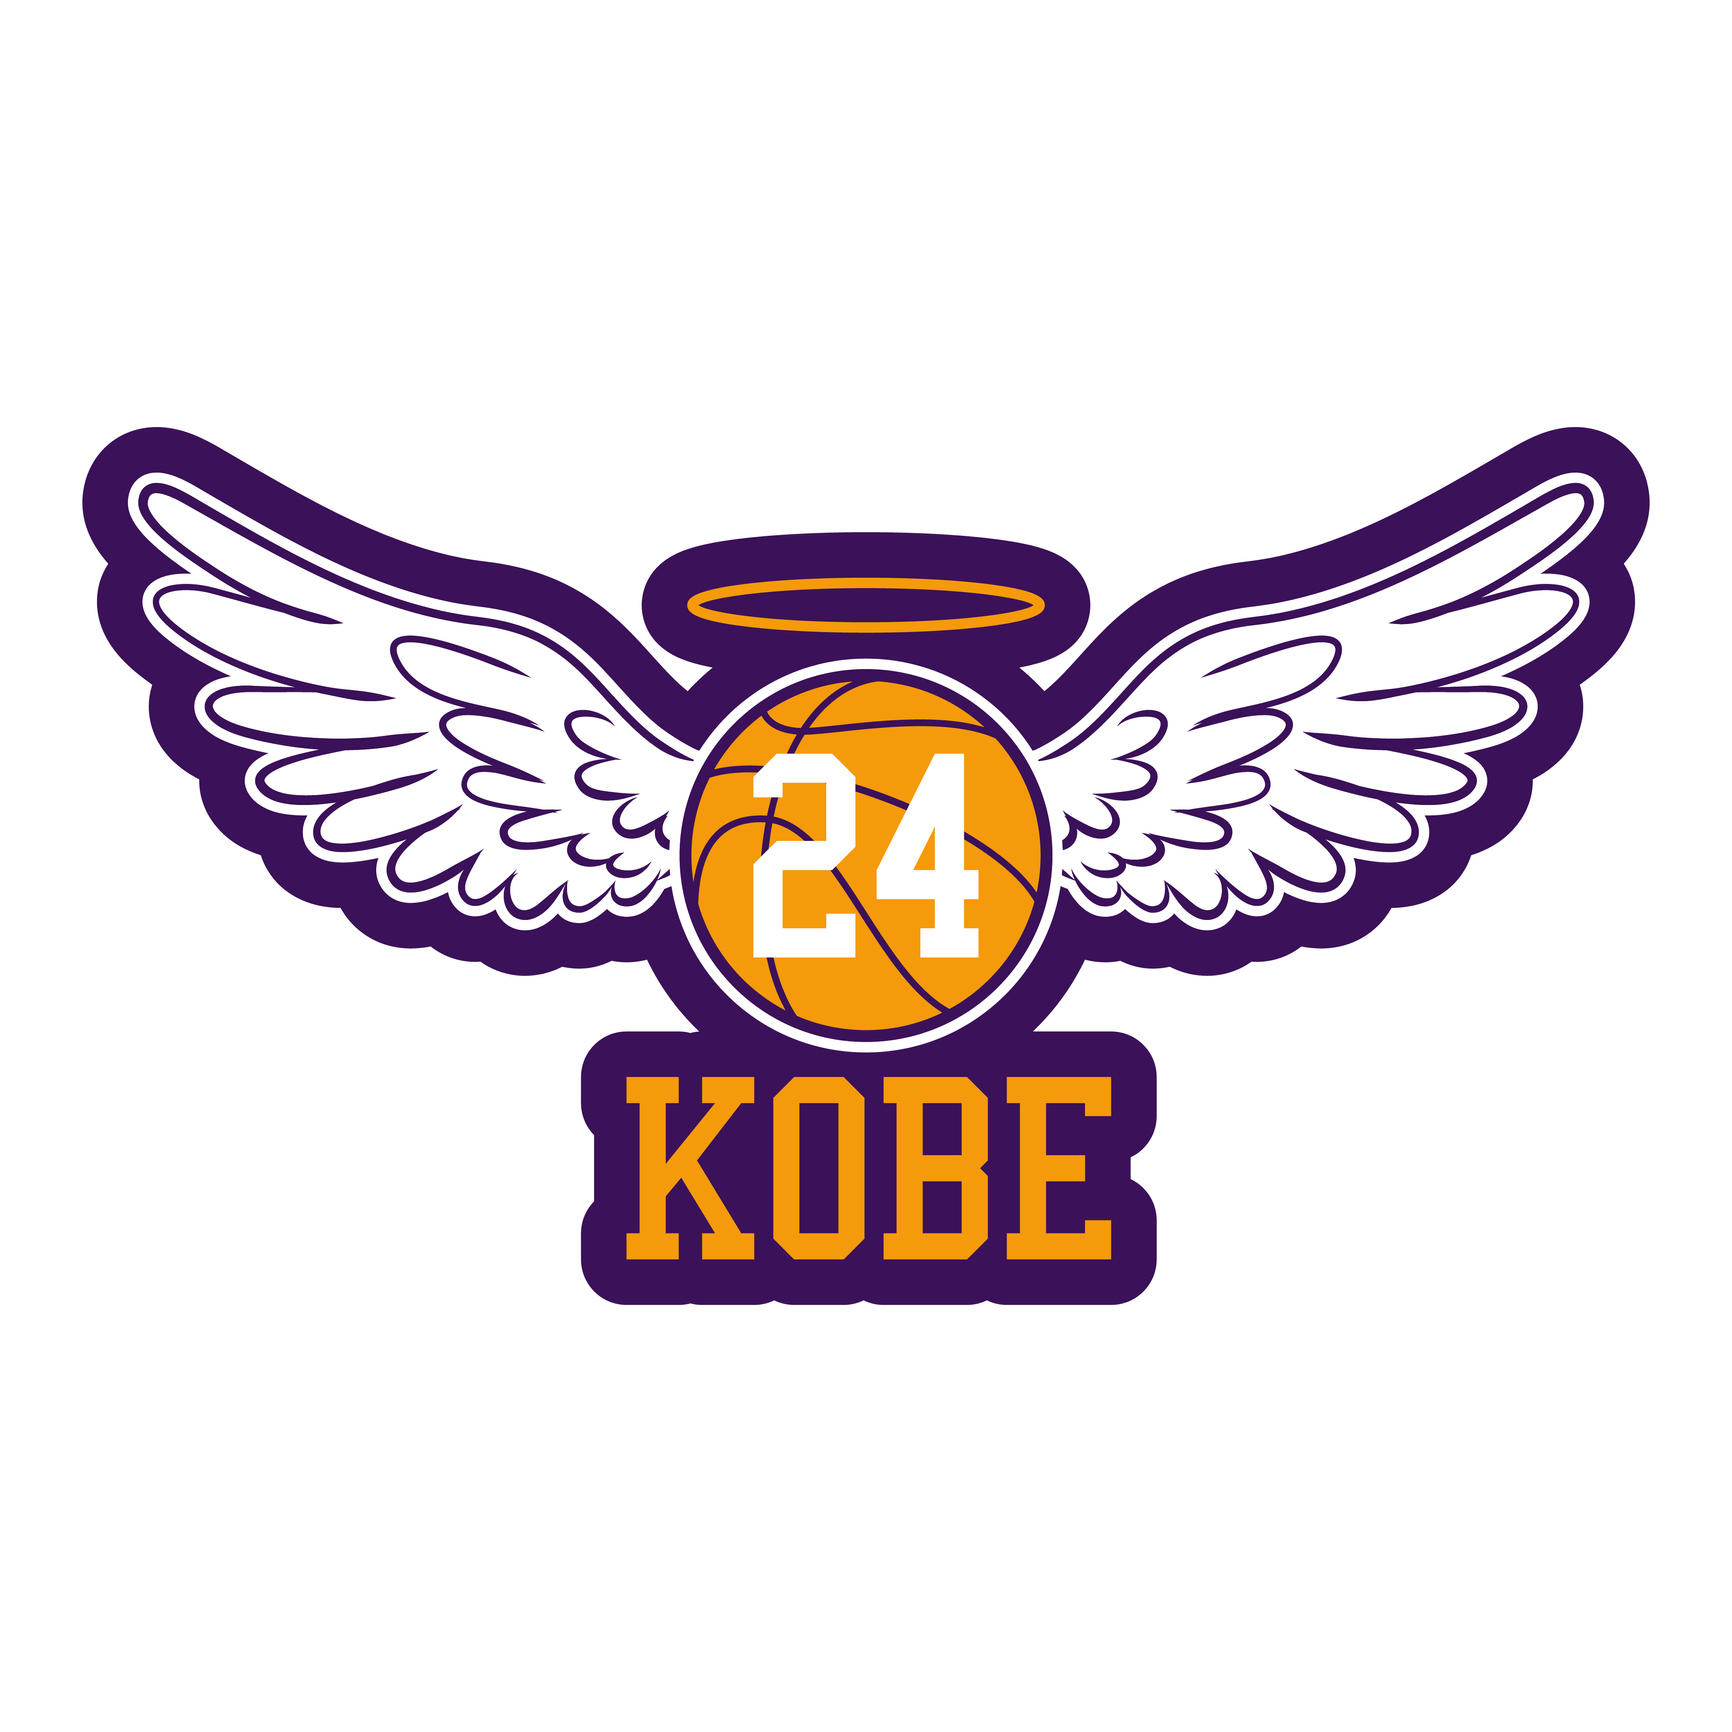 R.I.P. Kobe Bryant - Basketball with angel wings and glory.